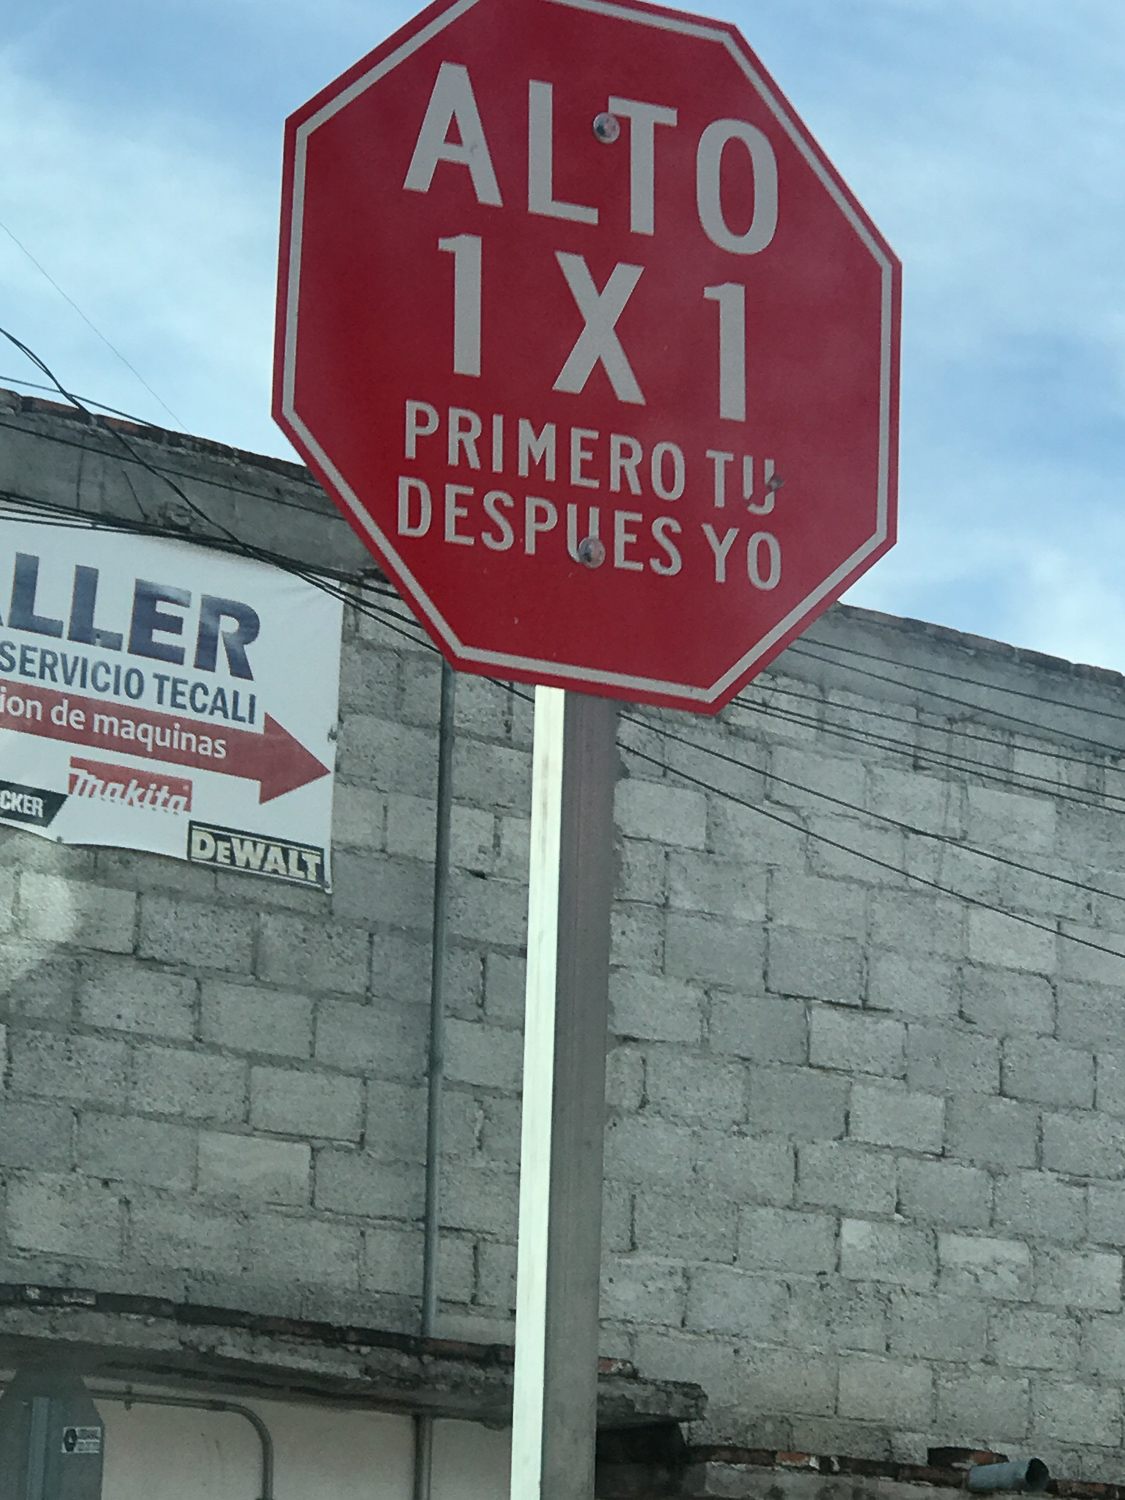 These stop signs in Cholula were a reminder that it doesn't take much for pedestrians to be placed at the center of design and planning. They read STOP, first you and then me (others said first the pedestrian). Doesn't that just have a nice ring to it? As a member of the  LA Walks  advisory board, a pedestrian advocacy organization, I thought of the organizing efforts underway to ensure communities color have safe and comfortable sidewalks and that crash fatalities are eliminated. The sidewalks are unique spaces that have an opportunity to marry storefronts, pedestrians, and street vendors to foster a sense of community.